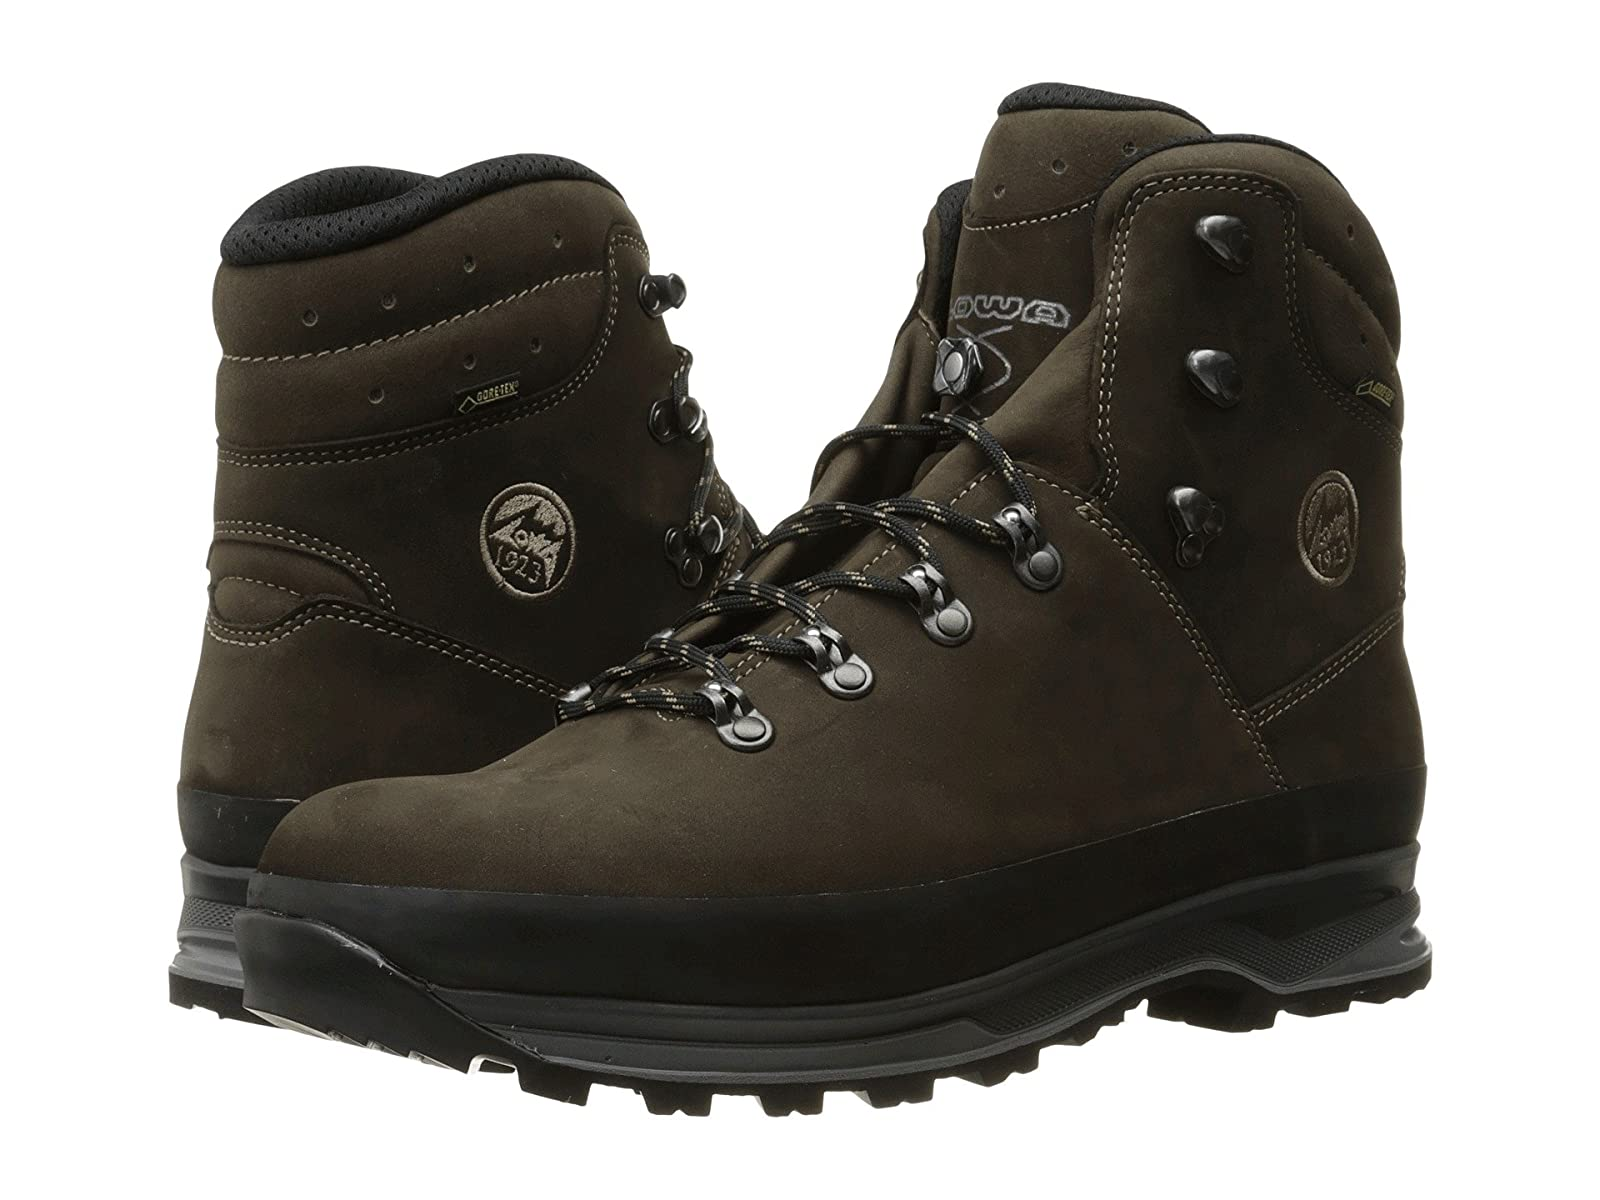 Lowa Ranger III GTXAffordable and distinctive shoes